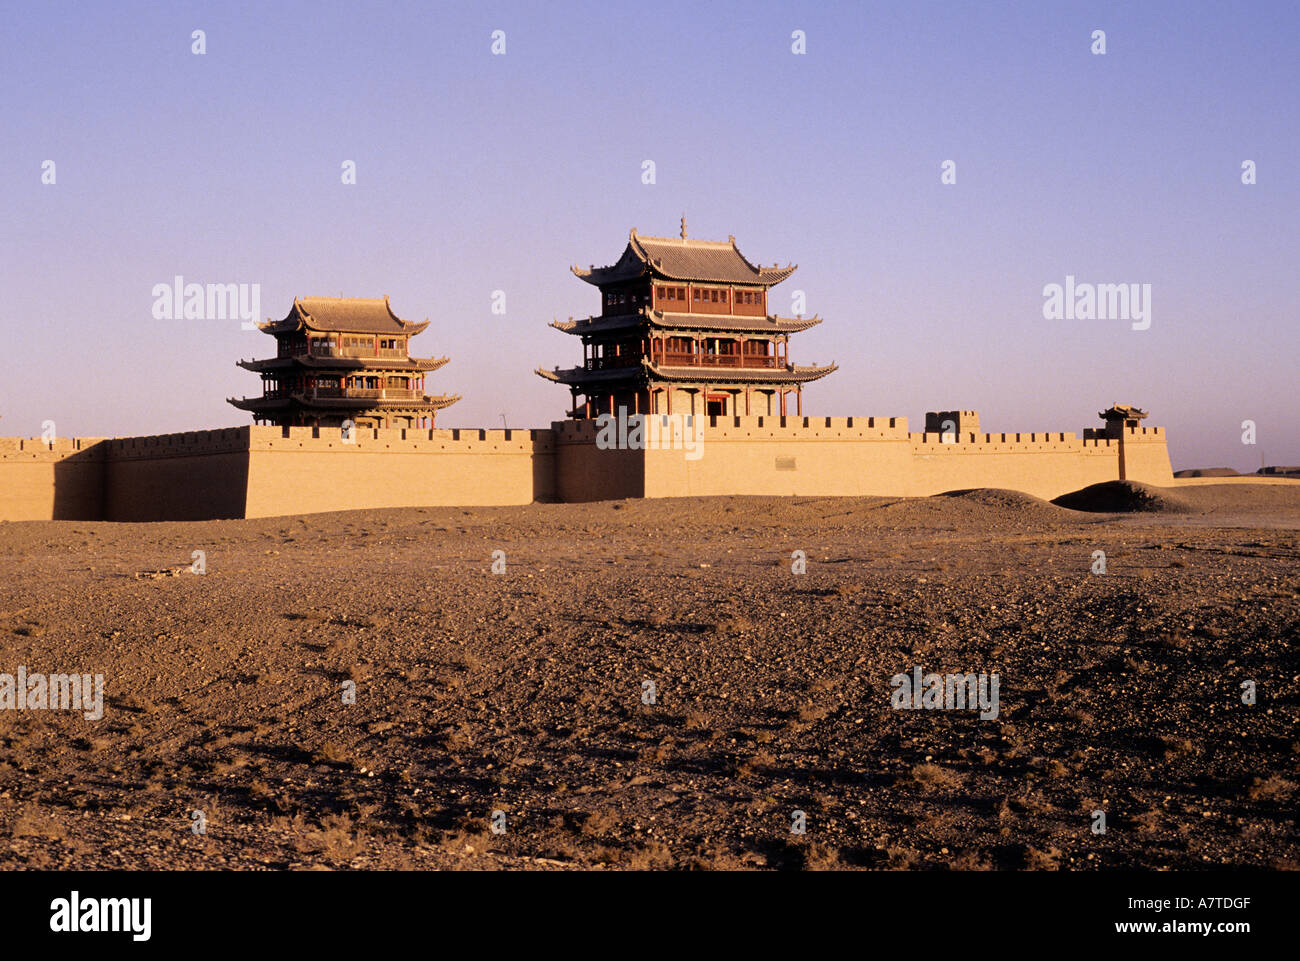 China, Jiayuguan fort marks the Western end of the Great Wall of China Stock Photo